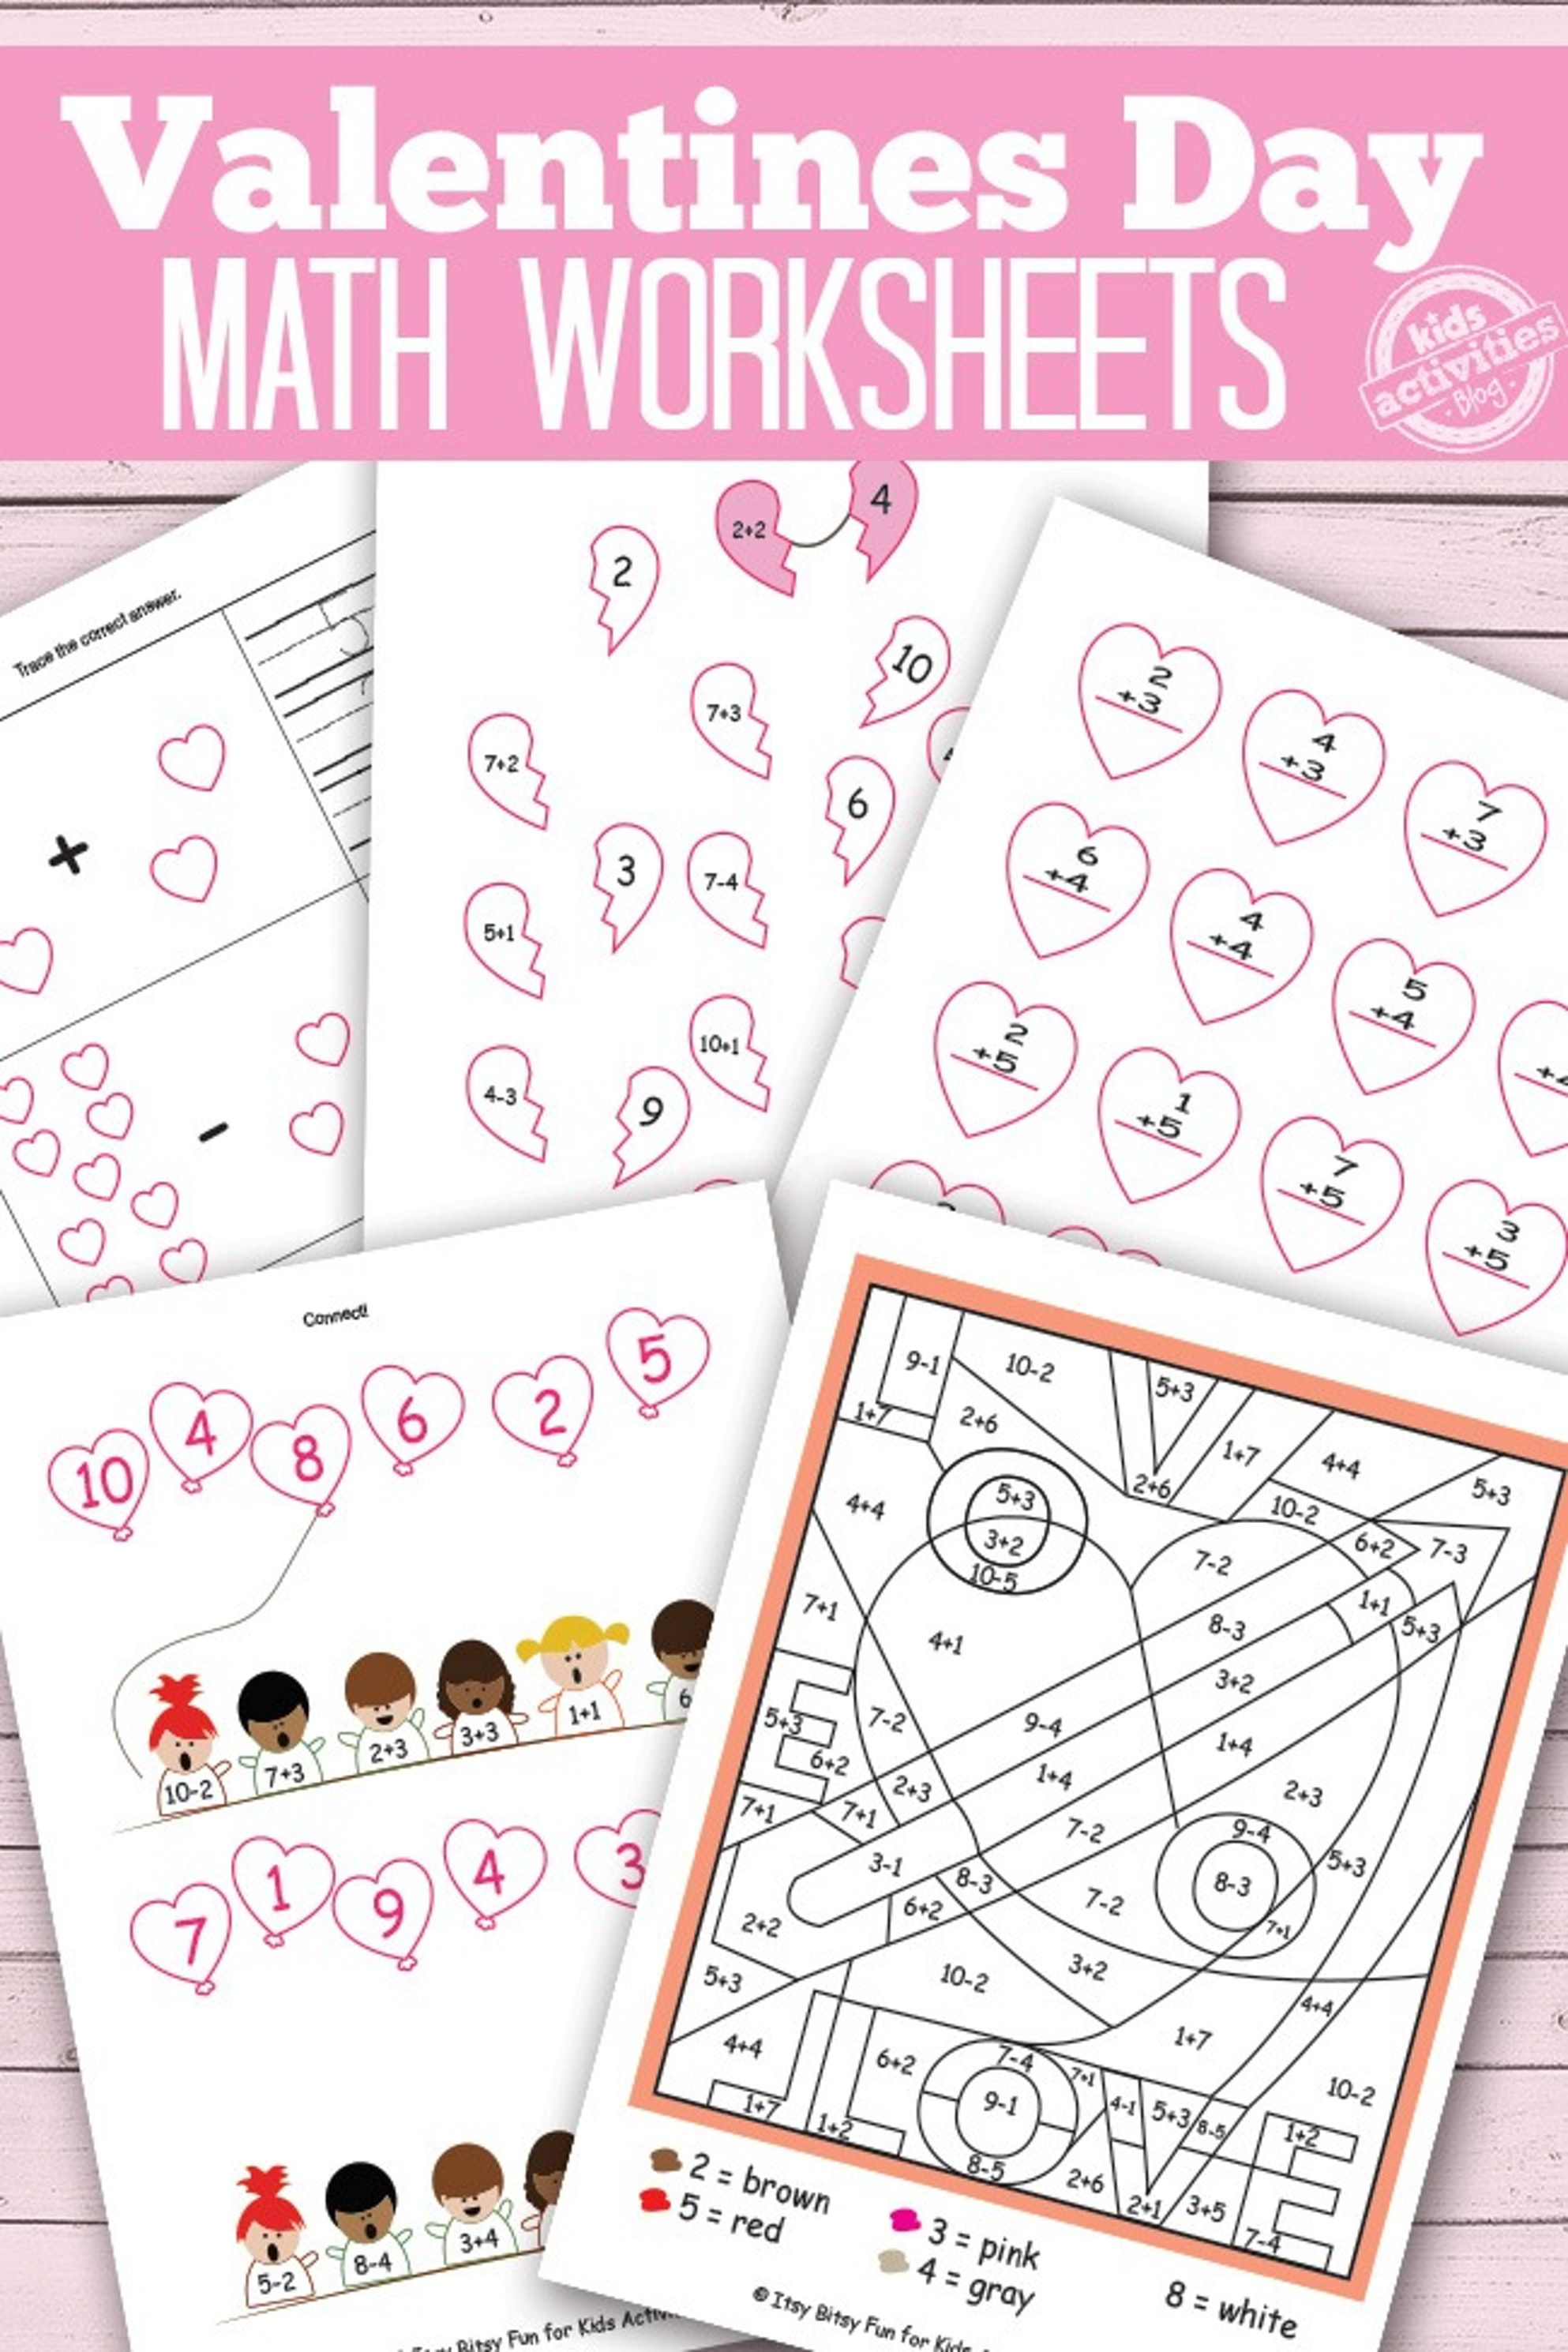 Valentines Day Math Worksheets Free Kids Printables